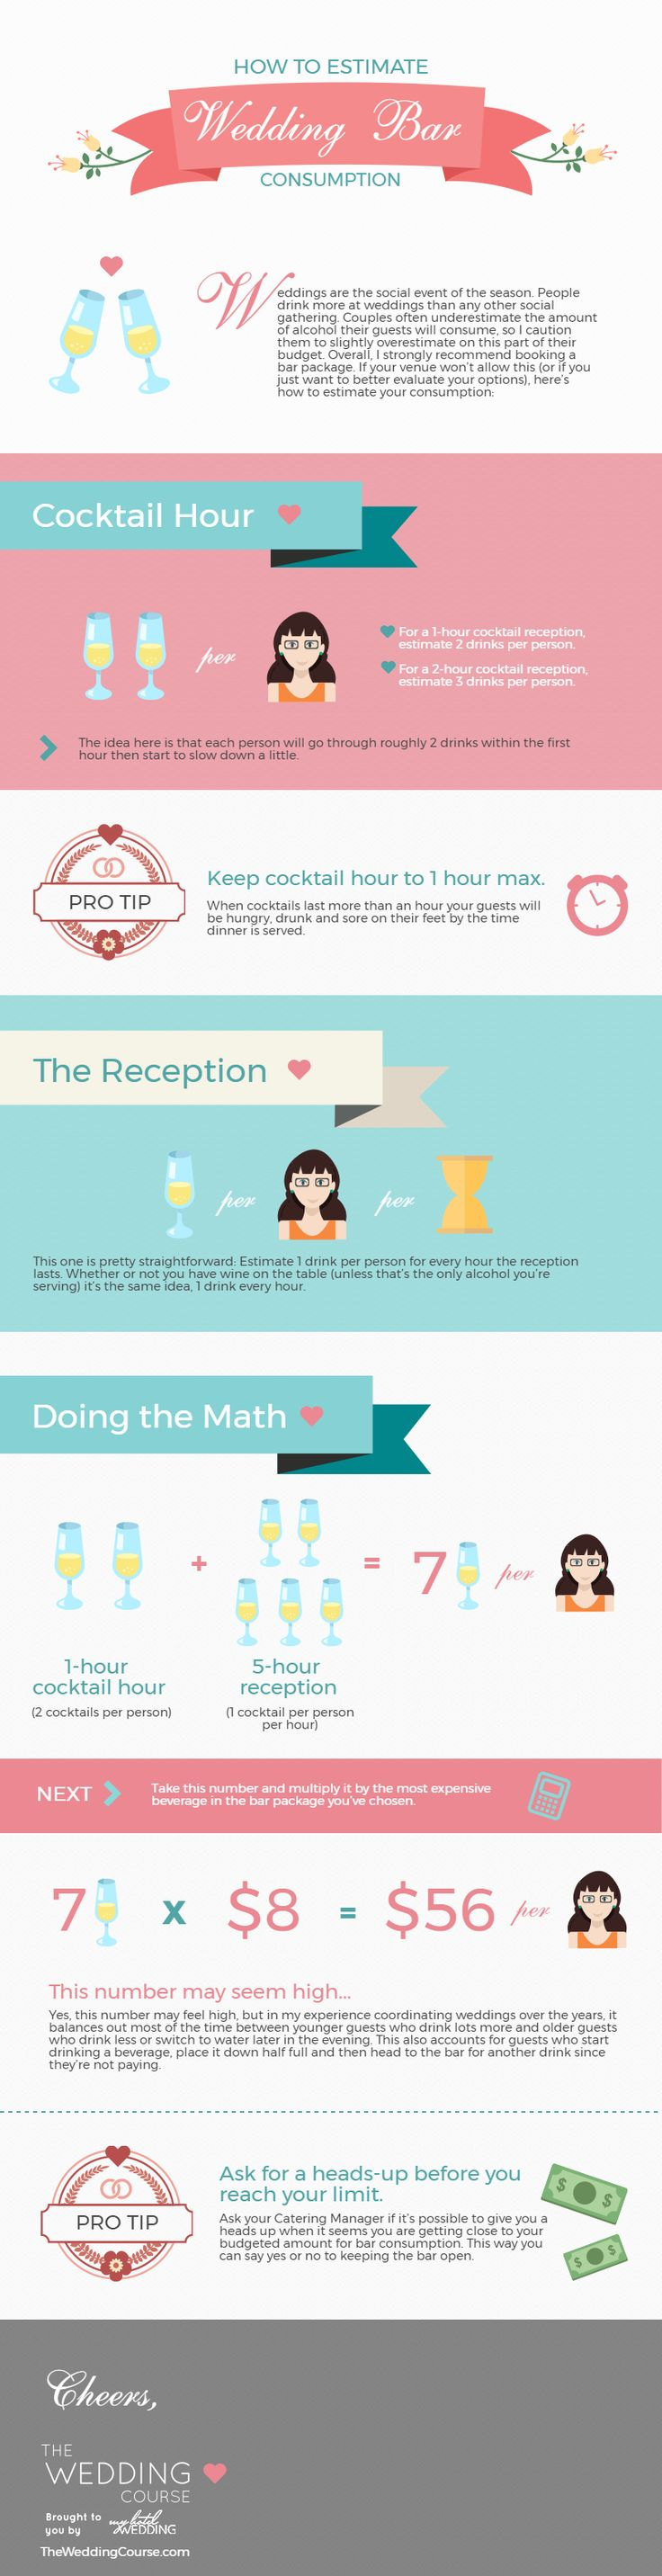 How to Accurately Estimate Your Wedding Bar Consumption: Here's how to get a relatively accurate cost per person for alcohol consumption at your wedding